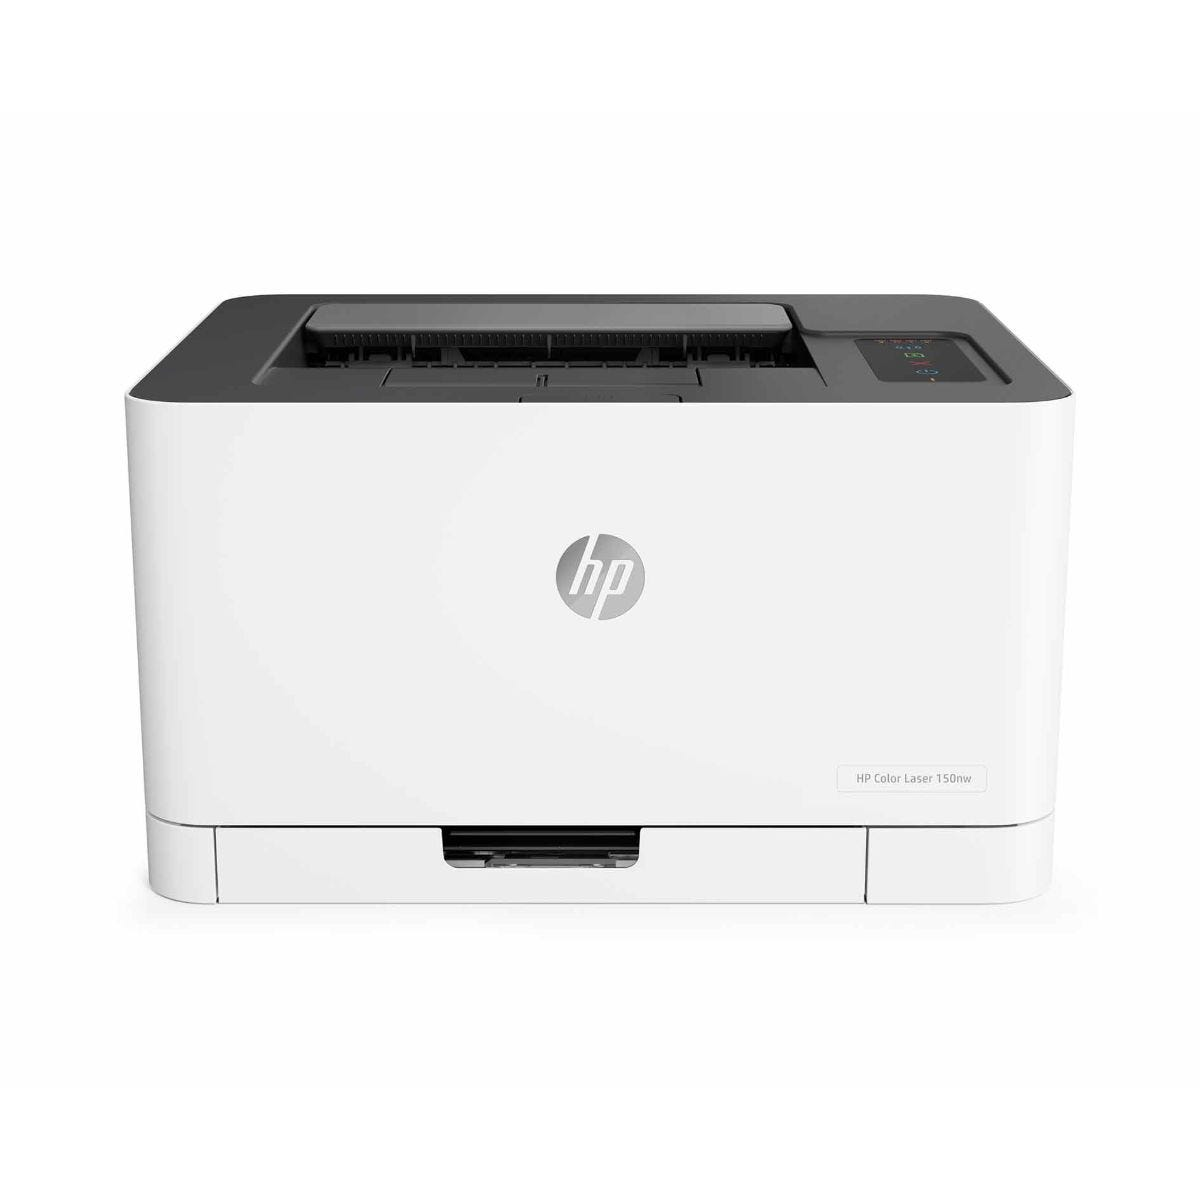 HP Color Laser 150nw Wi-Fi Printer